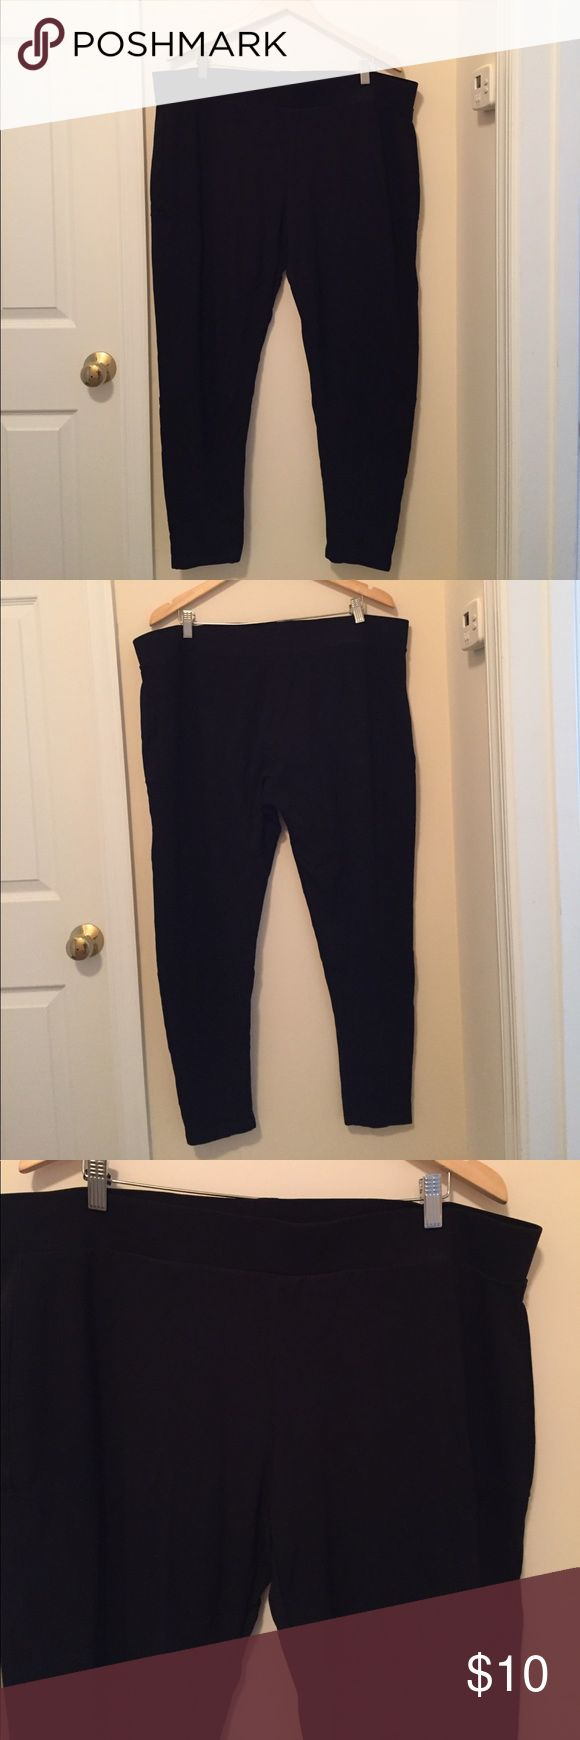 "Dex Leggings 3X Black stretchy leggings by Dex. Material is thicker and not see through. Flattering lined details on legs. Waist 42"", Hips 44"", Inseam 28"". 96% Polyester, 4% Spandex. Great condition. Dex Pants Leggings"